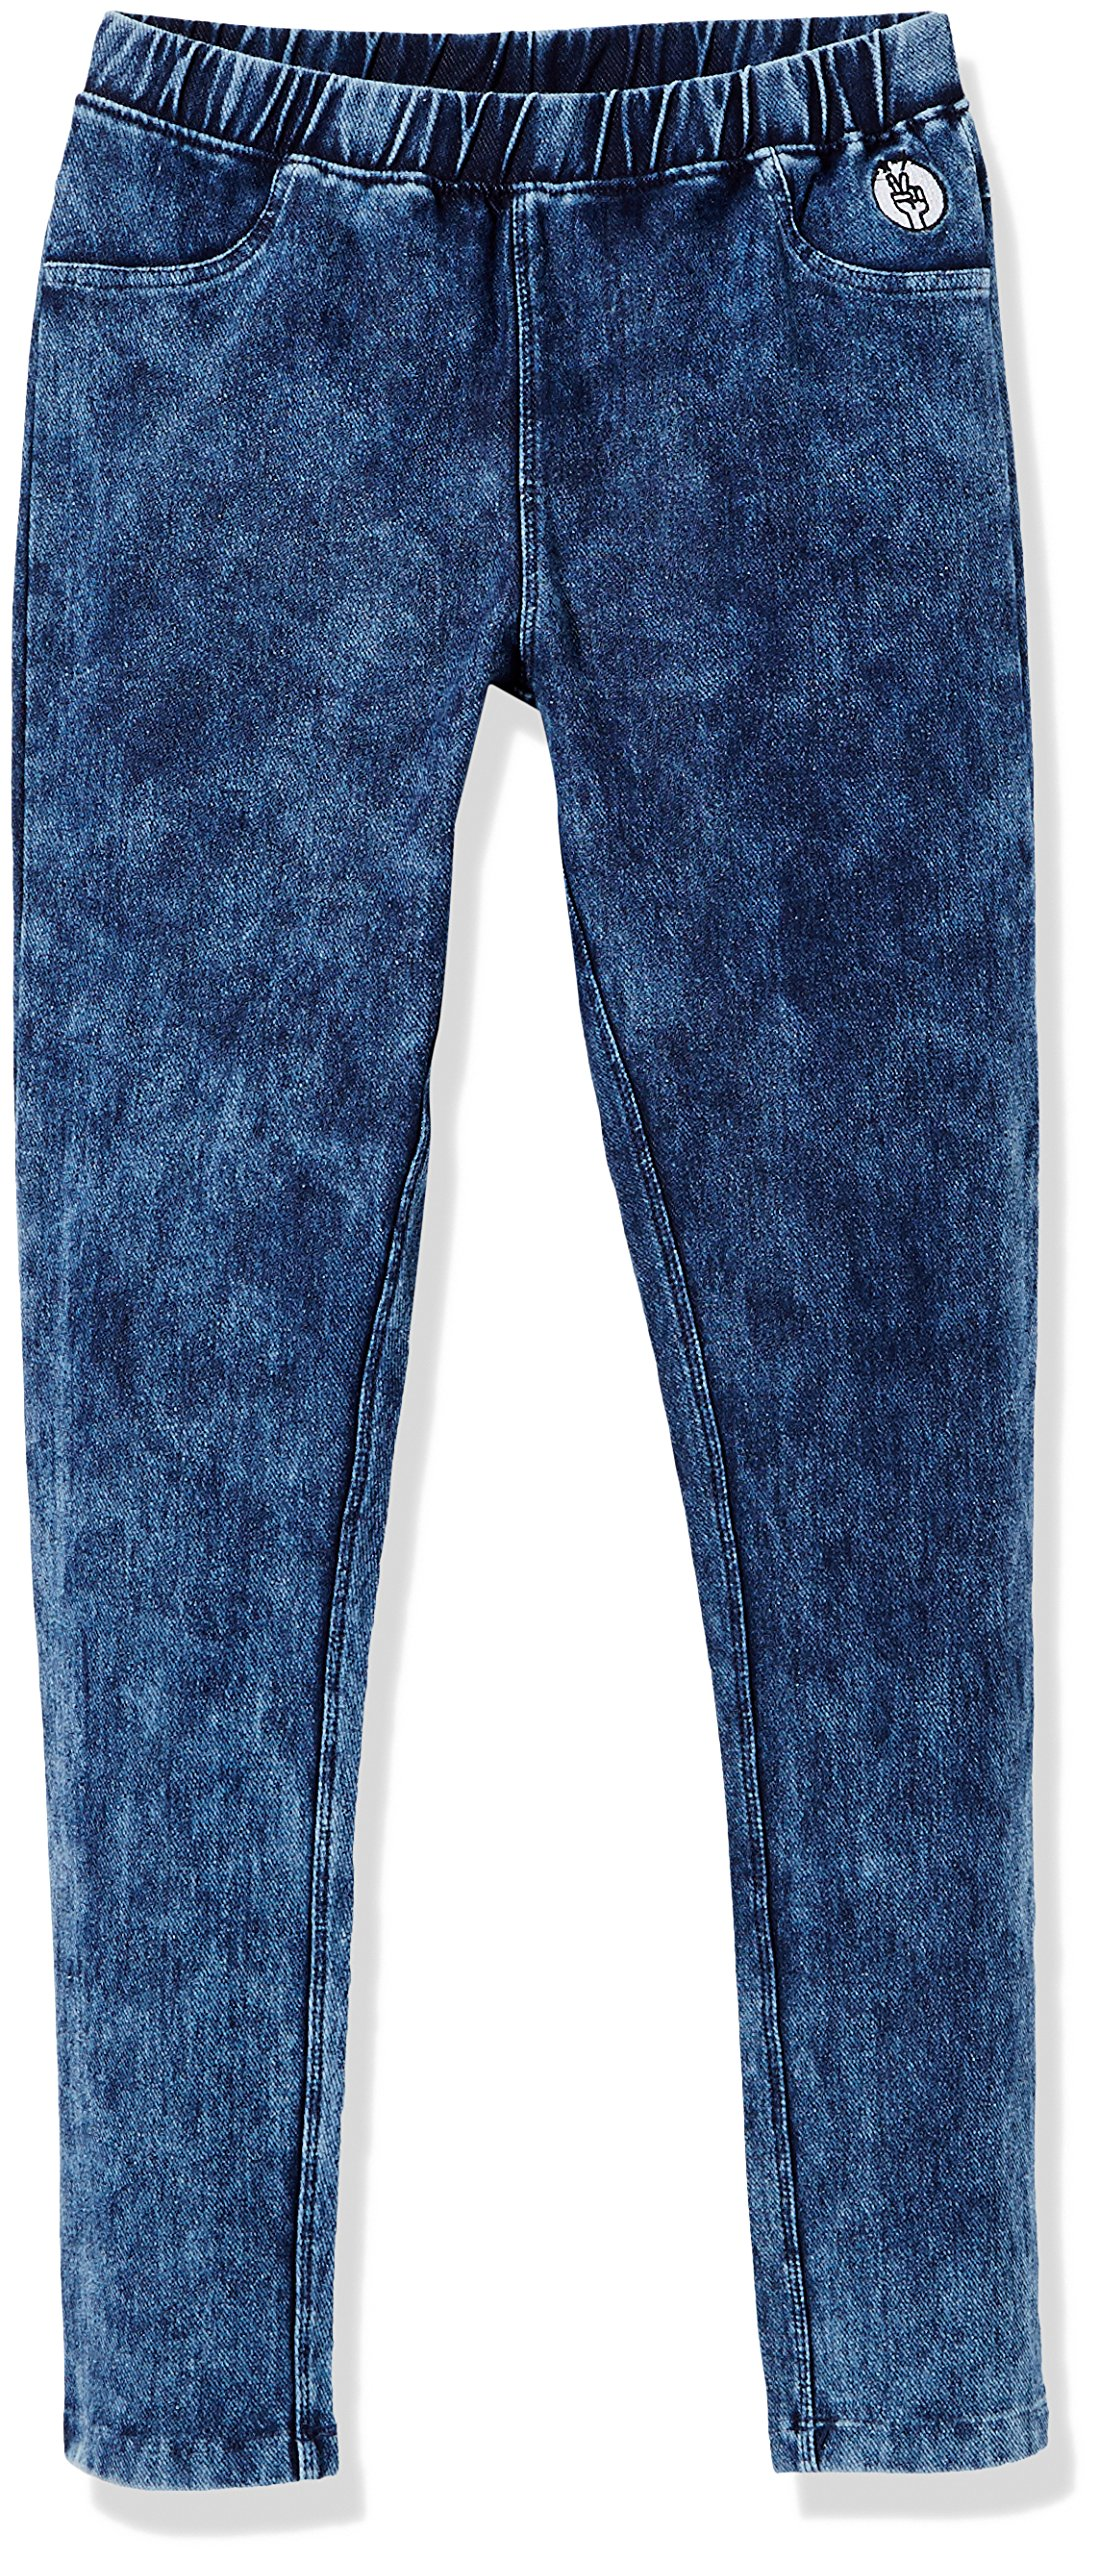 Kid Nation Girls' Cotton Stretch Washed Knit Pull-on Jegging S Navy Washed …